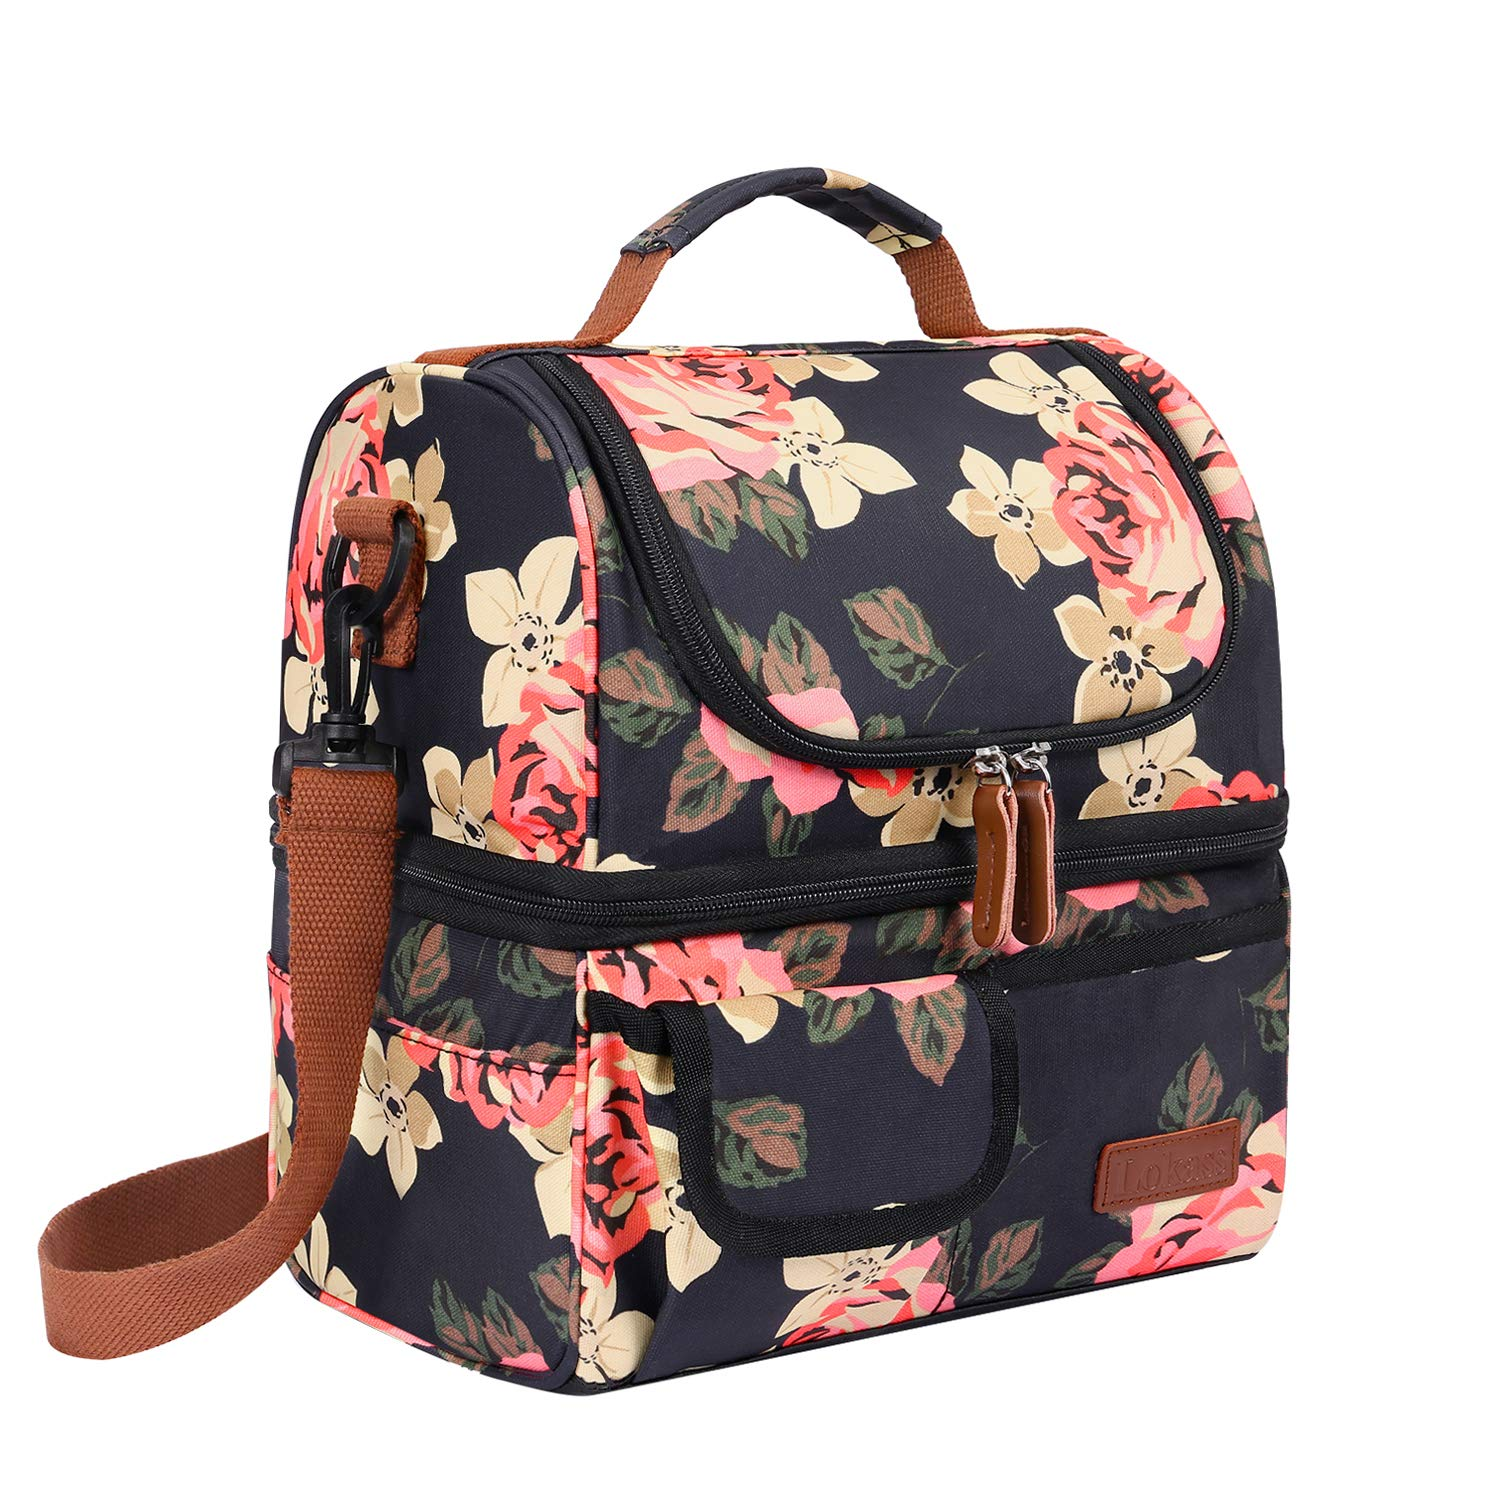 LOKASS Lunch Bags for Women Double Deck Insulated Lunch Box Large Cooler Tote Bag with Removable Shoulder Strap Wide Open Thermal Meal Prep Lunch Organizer Box for Adults/Work/Outdoor, Black Peony by LOKASS